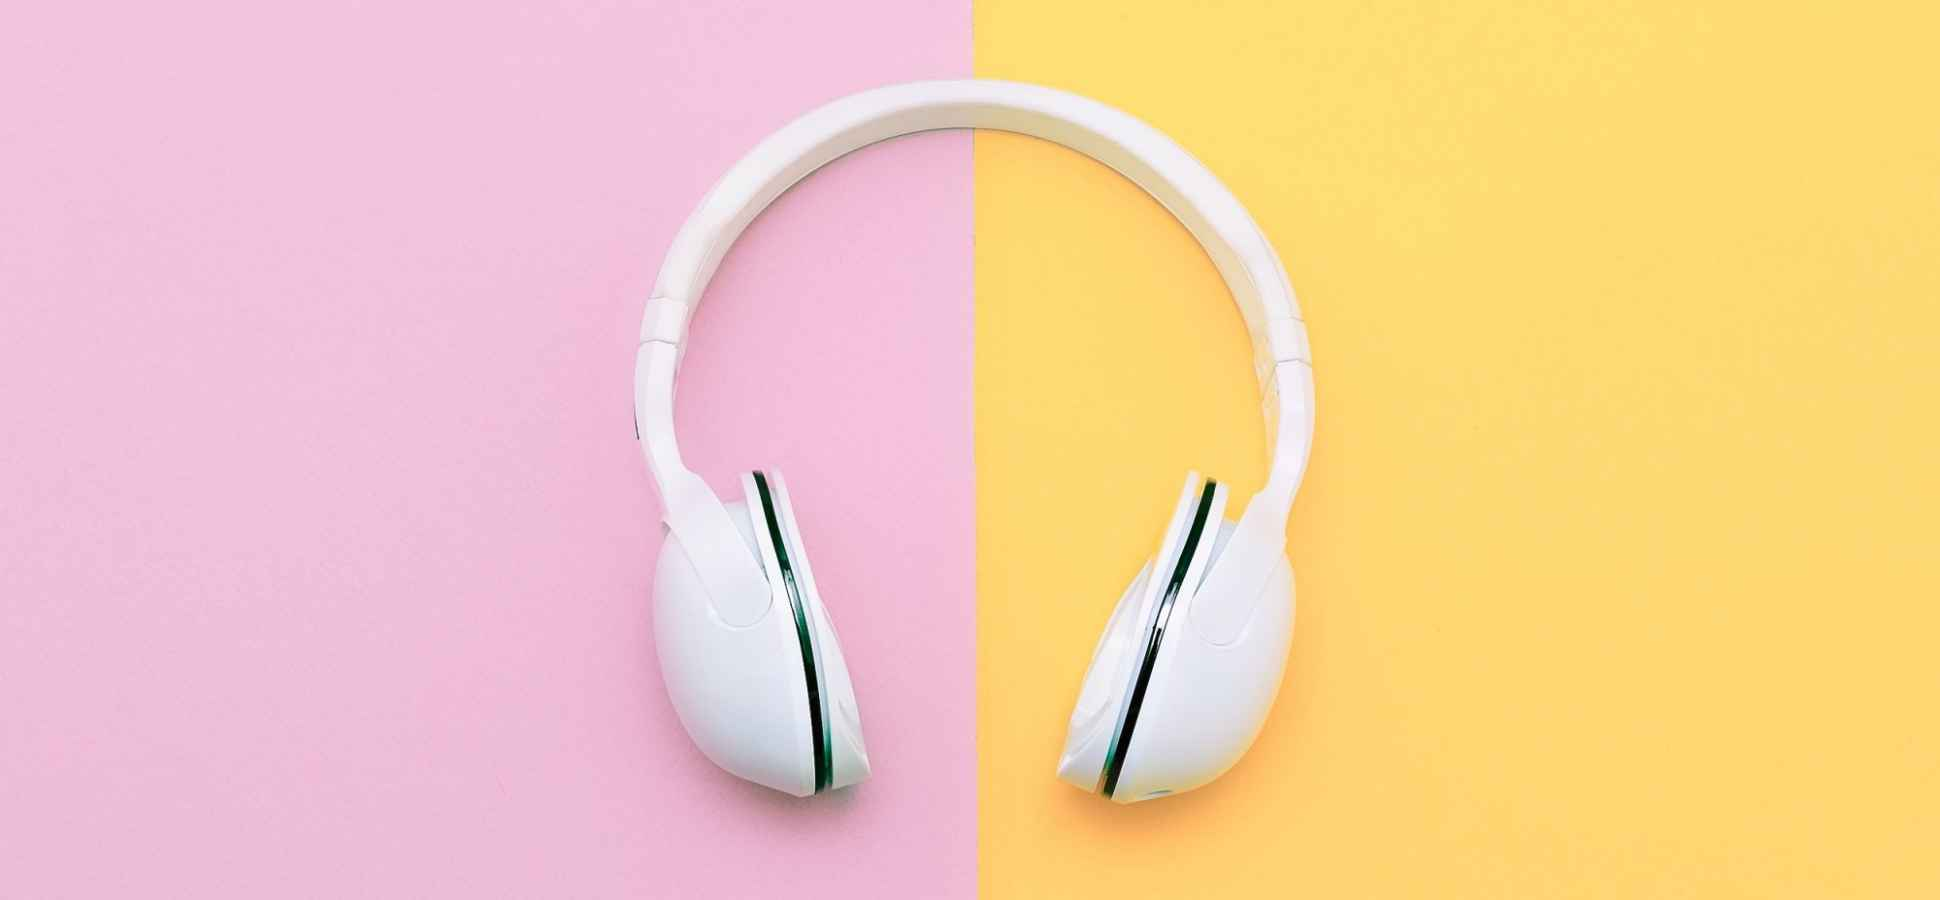 6 Best Brain-Boosting Podcasts to Listen to Over Your Lunch Break | Inc.com